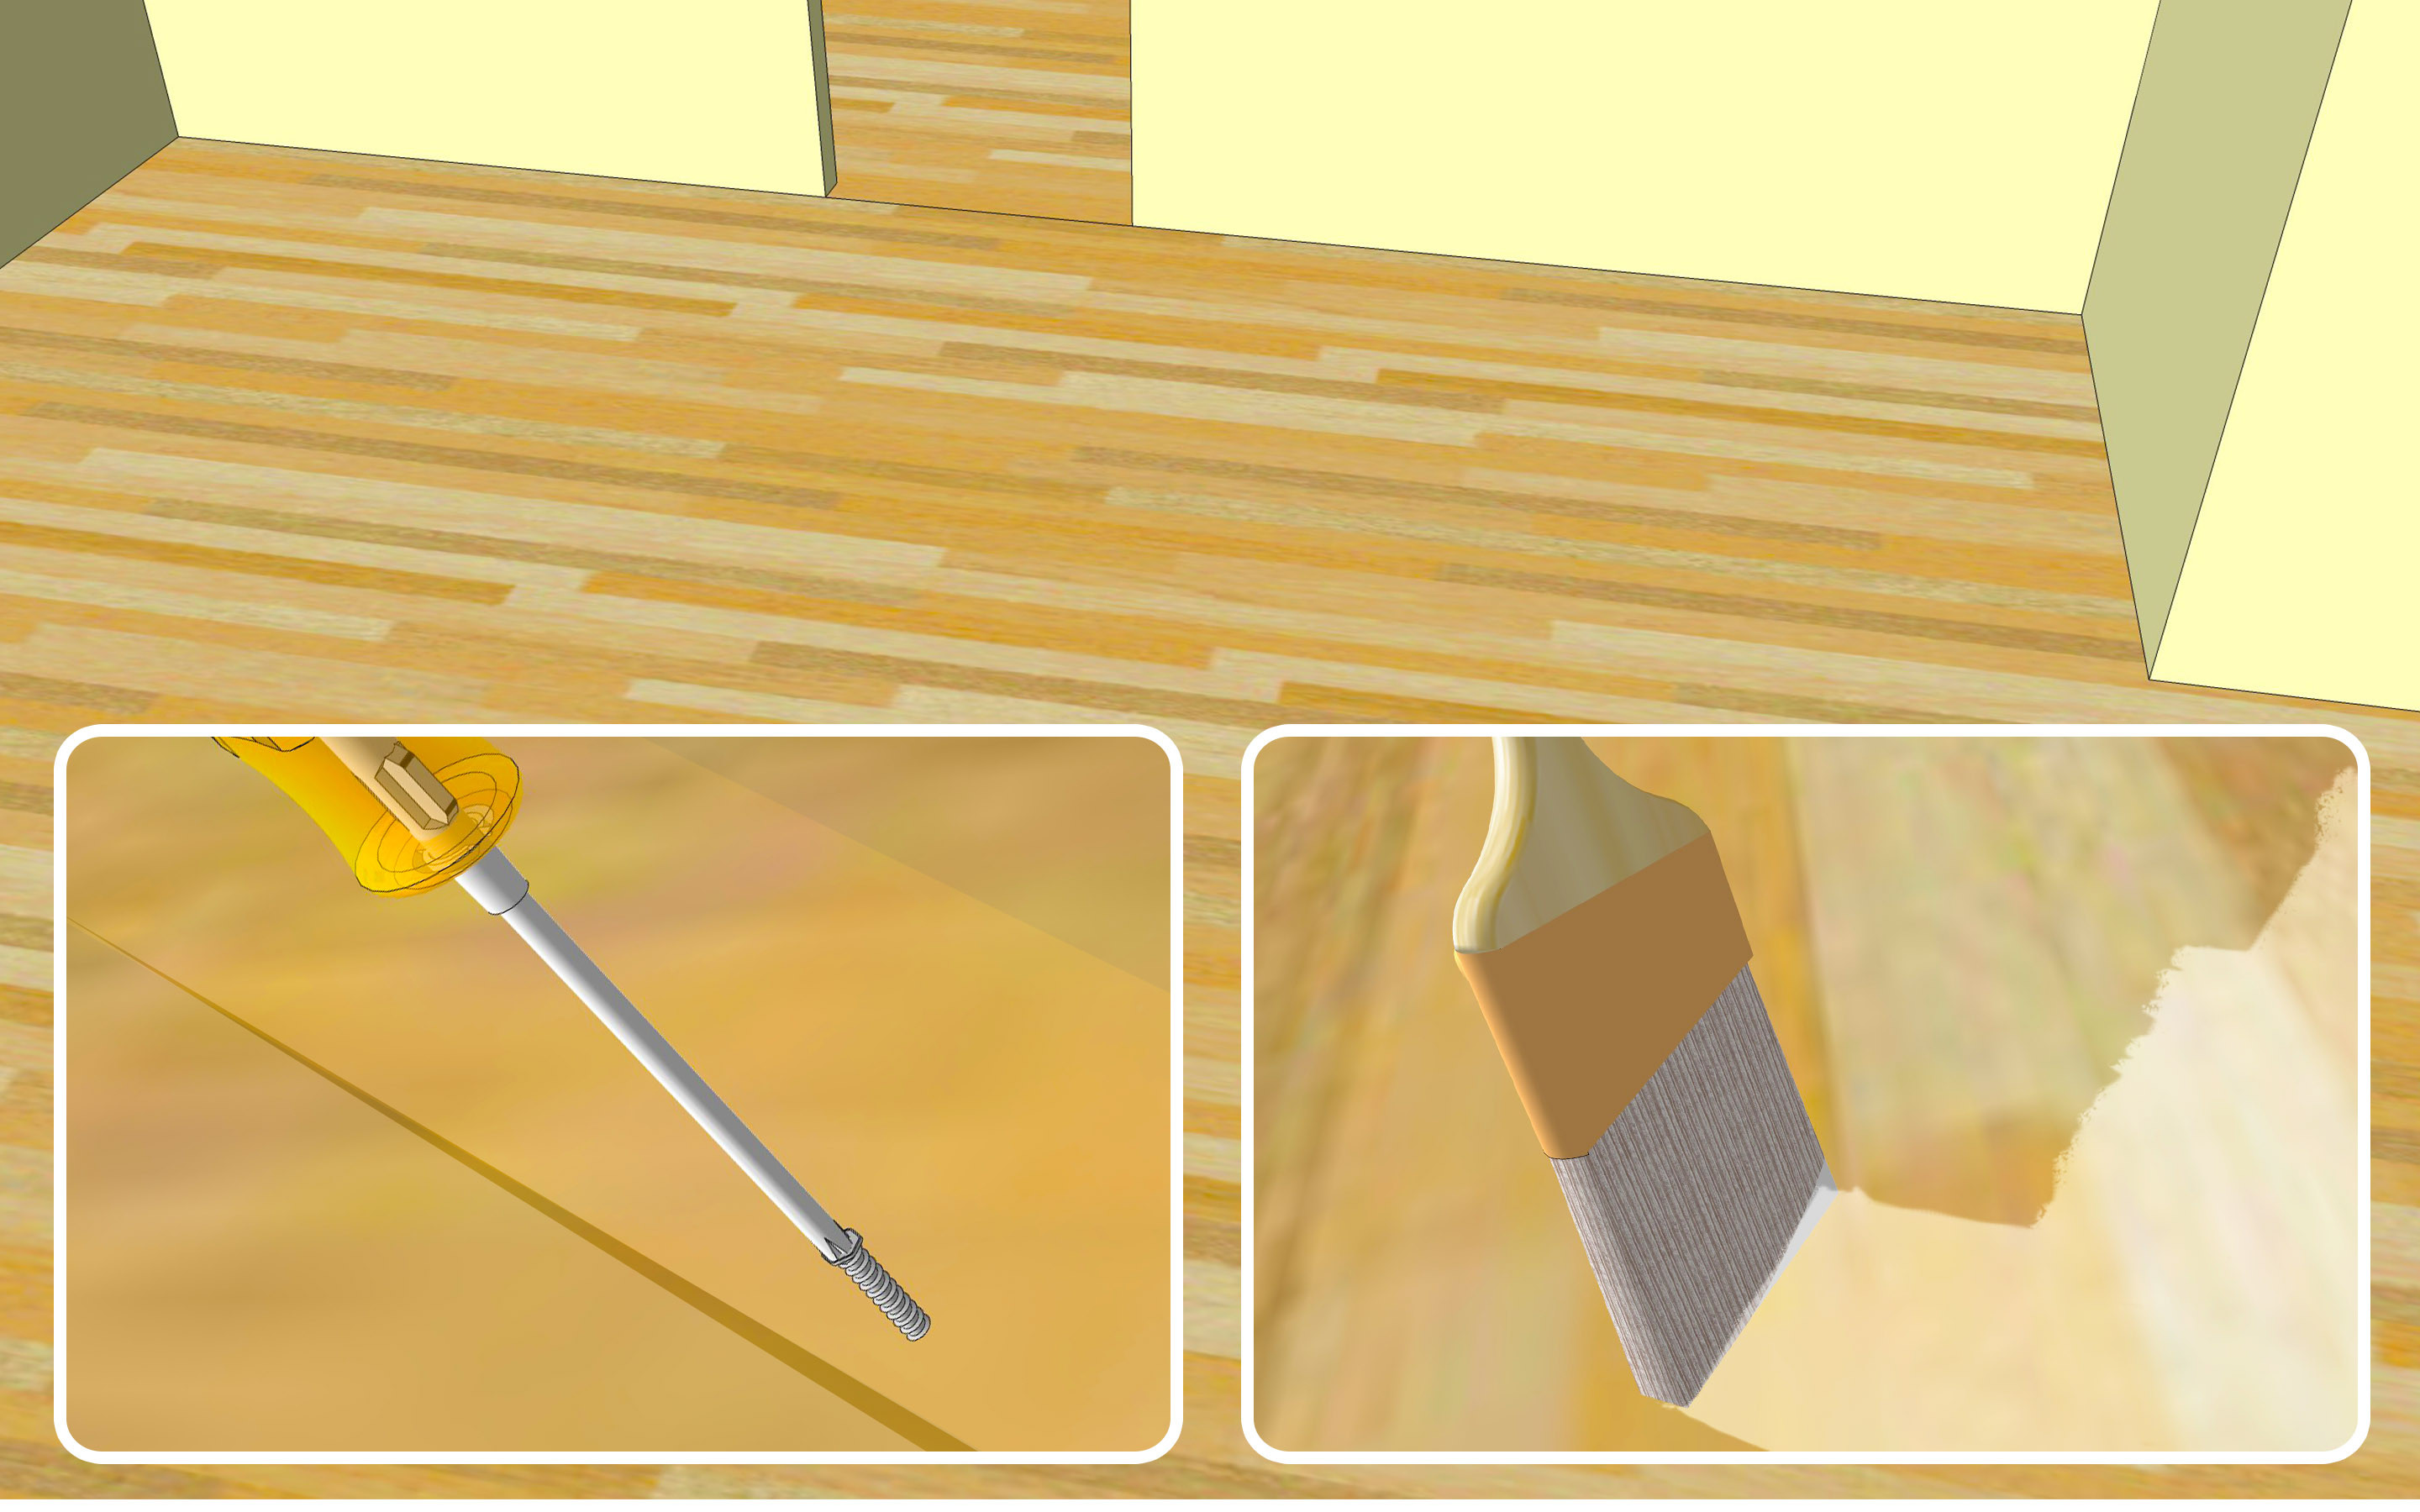 hardwood floors on slab of how to take out carpet 13 steps with pictures wikihow throughout take out carpet step 13 version 2